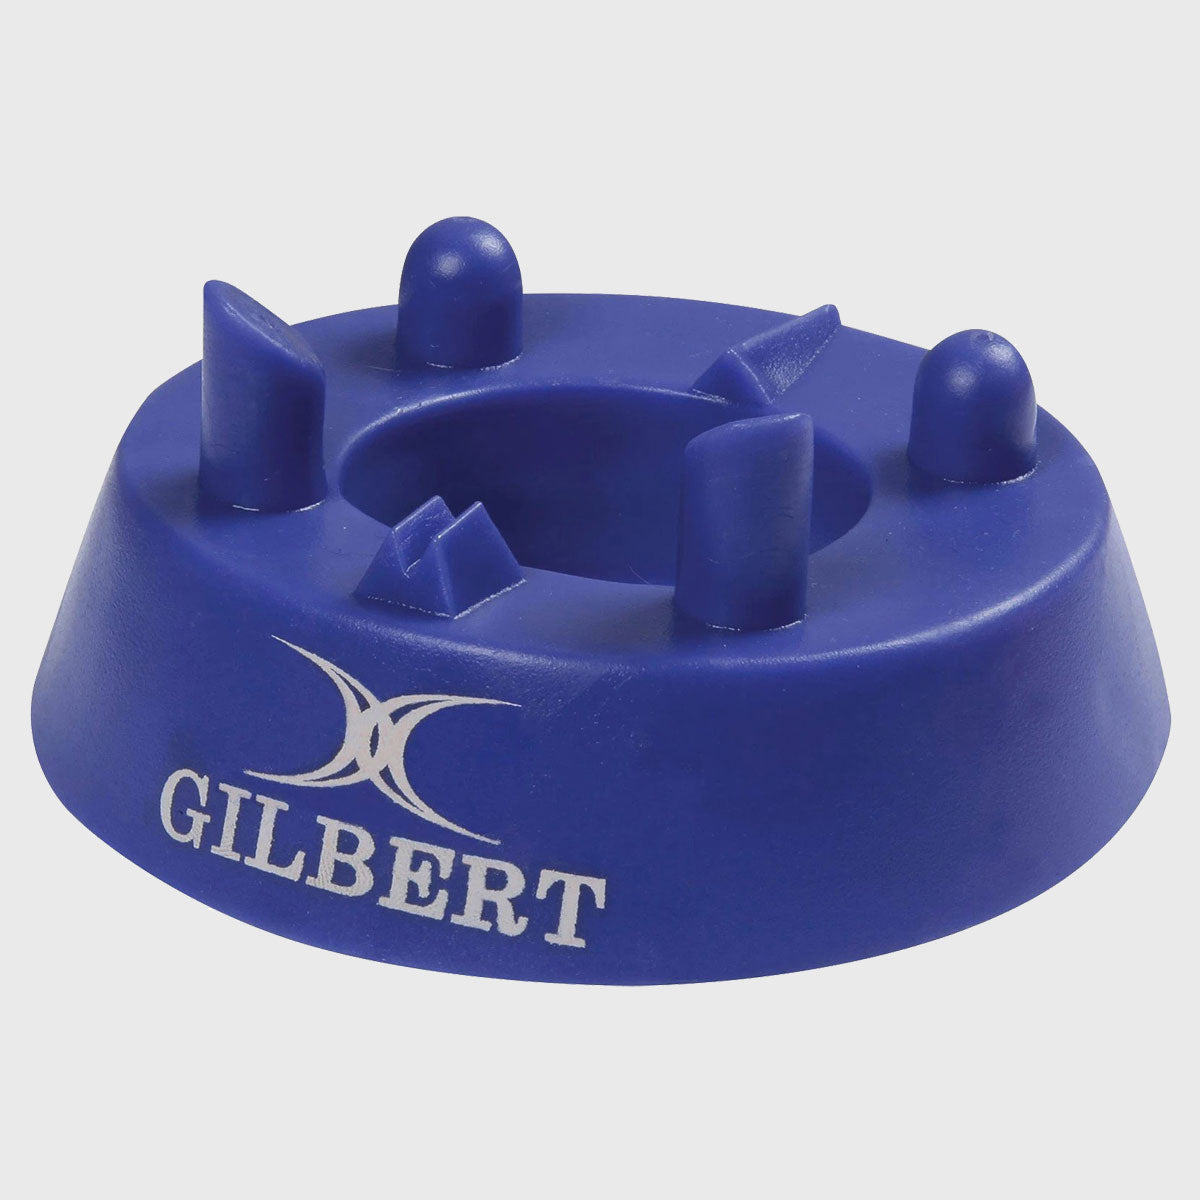 320 Rugby Kicking Tee Blue - First XV rugbystuff.com